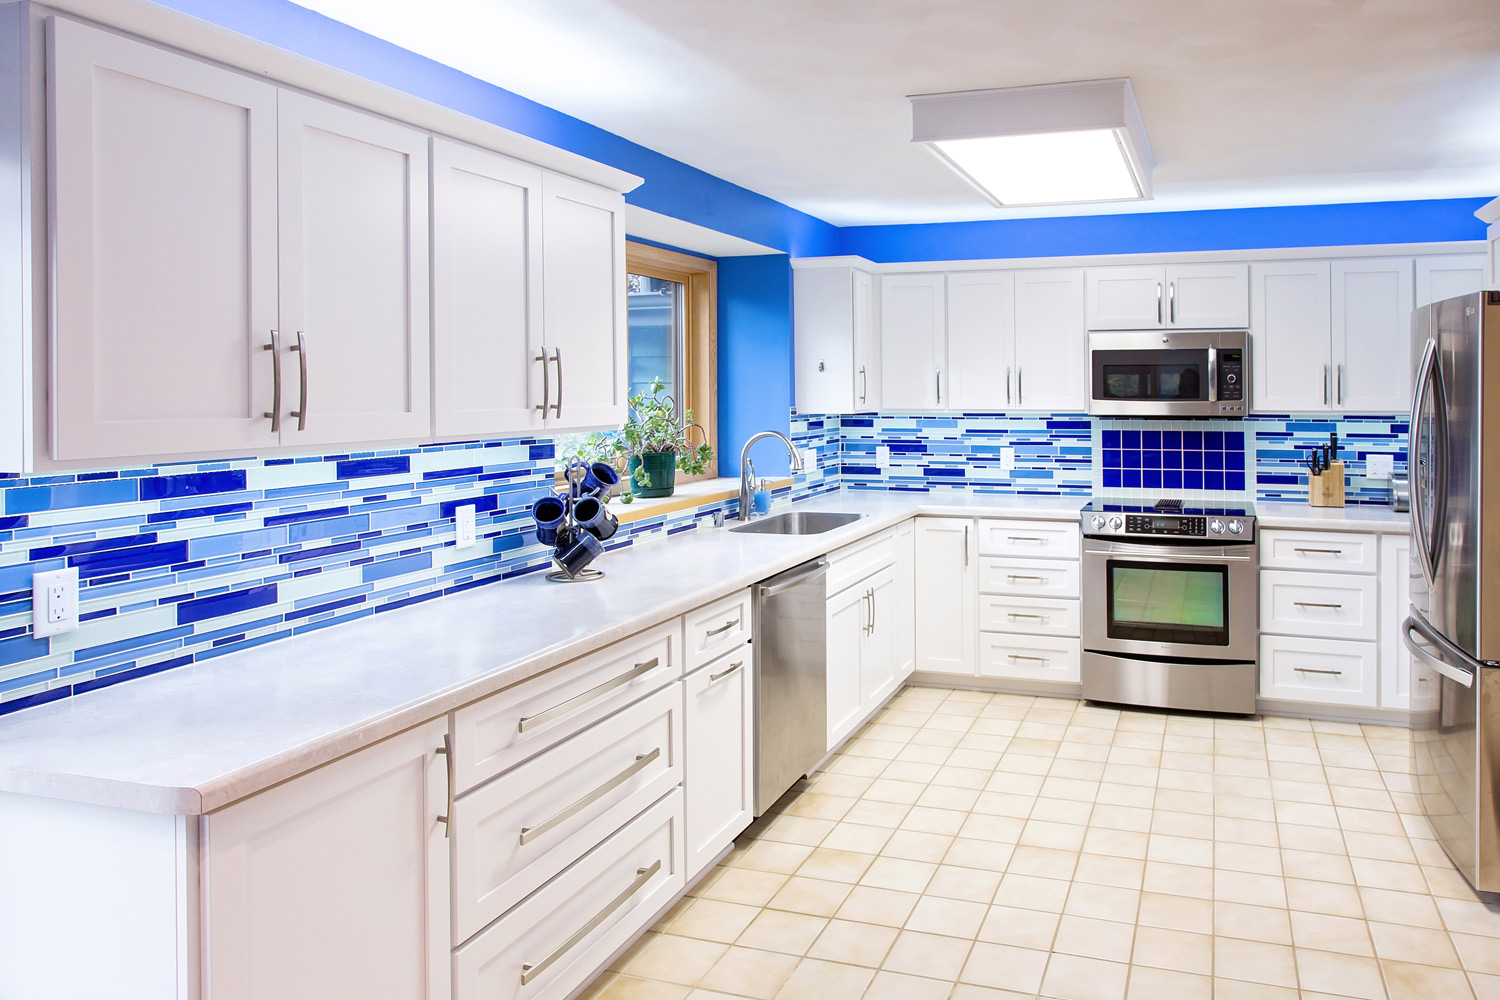 NARI Madison CotY Award Winning Project, Kitchen Remodel $30-60K